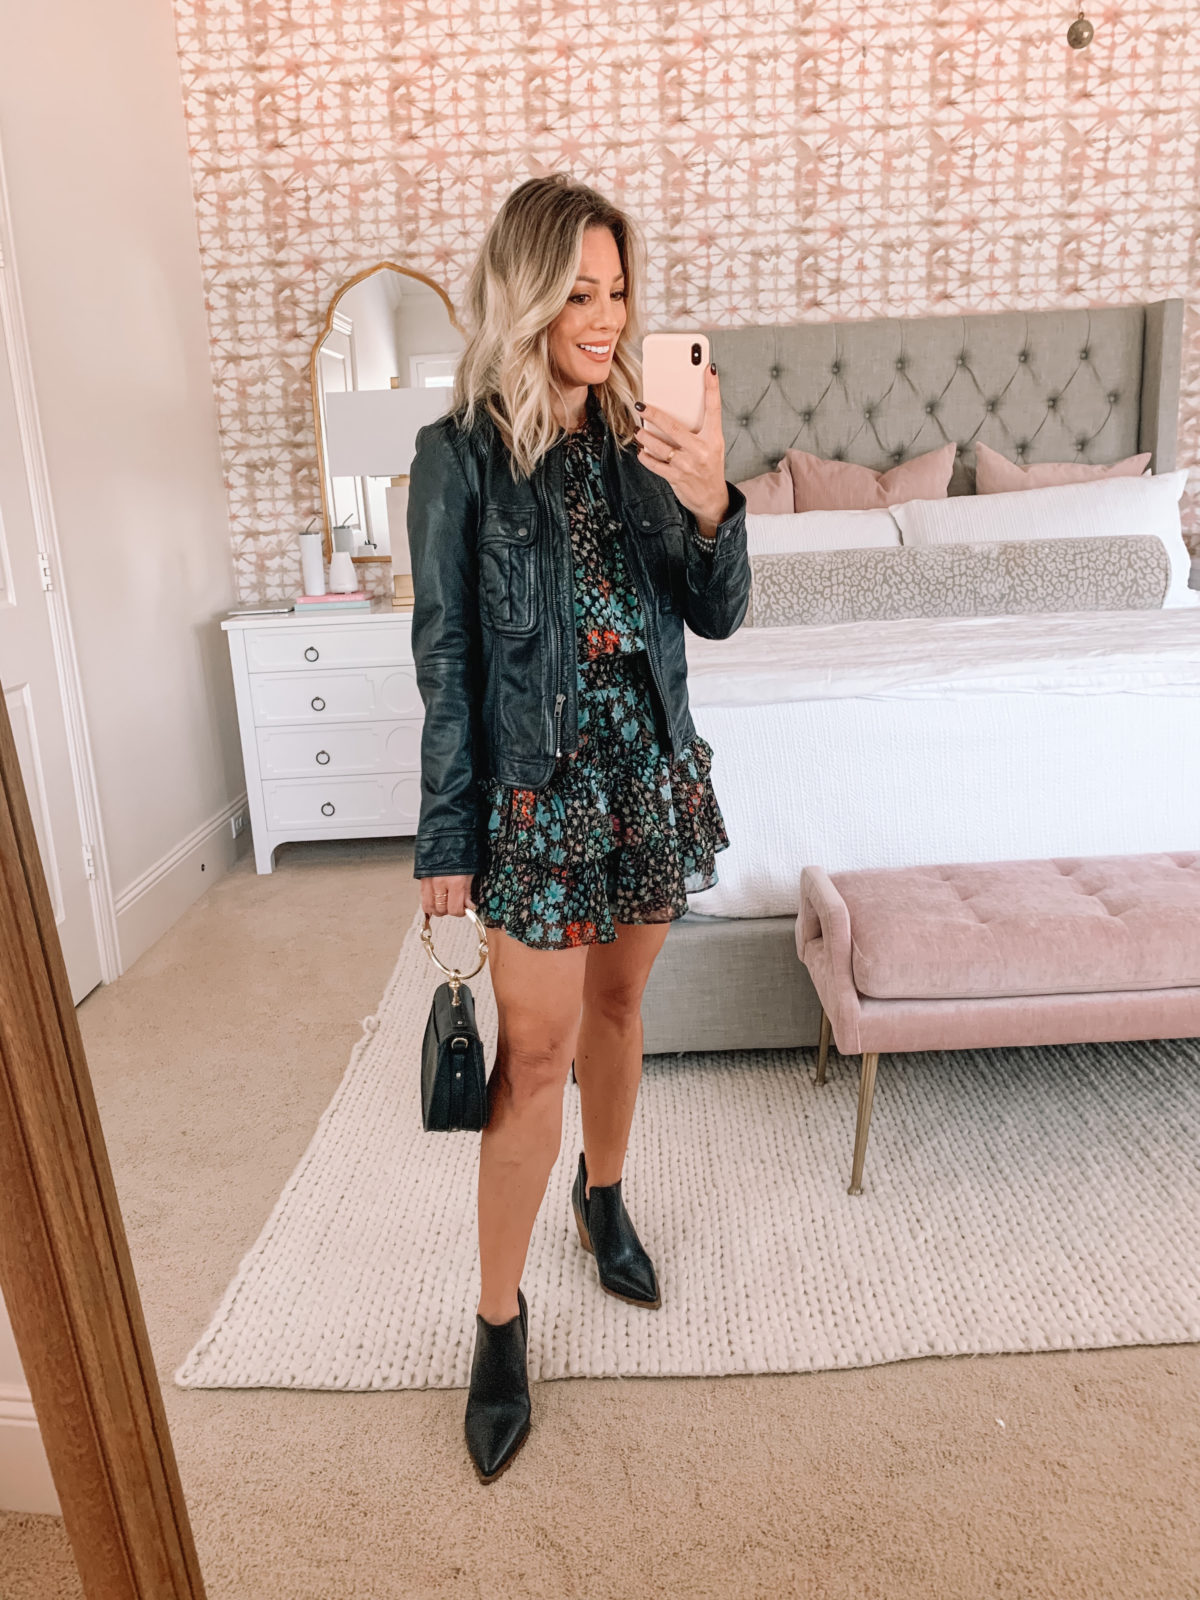 Red Dress Fashion Finds, Dress, Jacket, Booties, Clutch